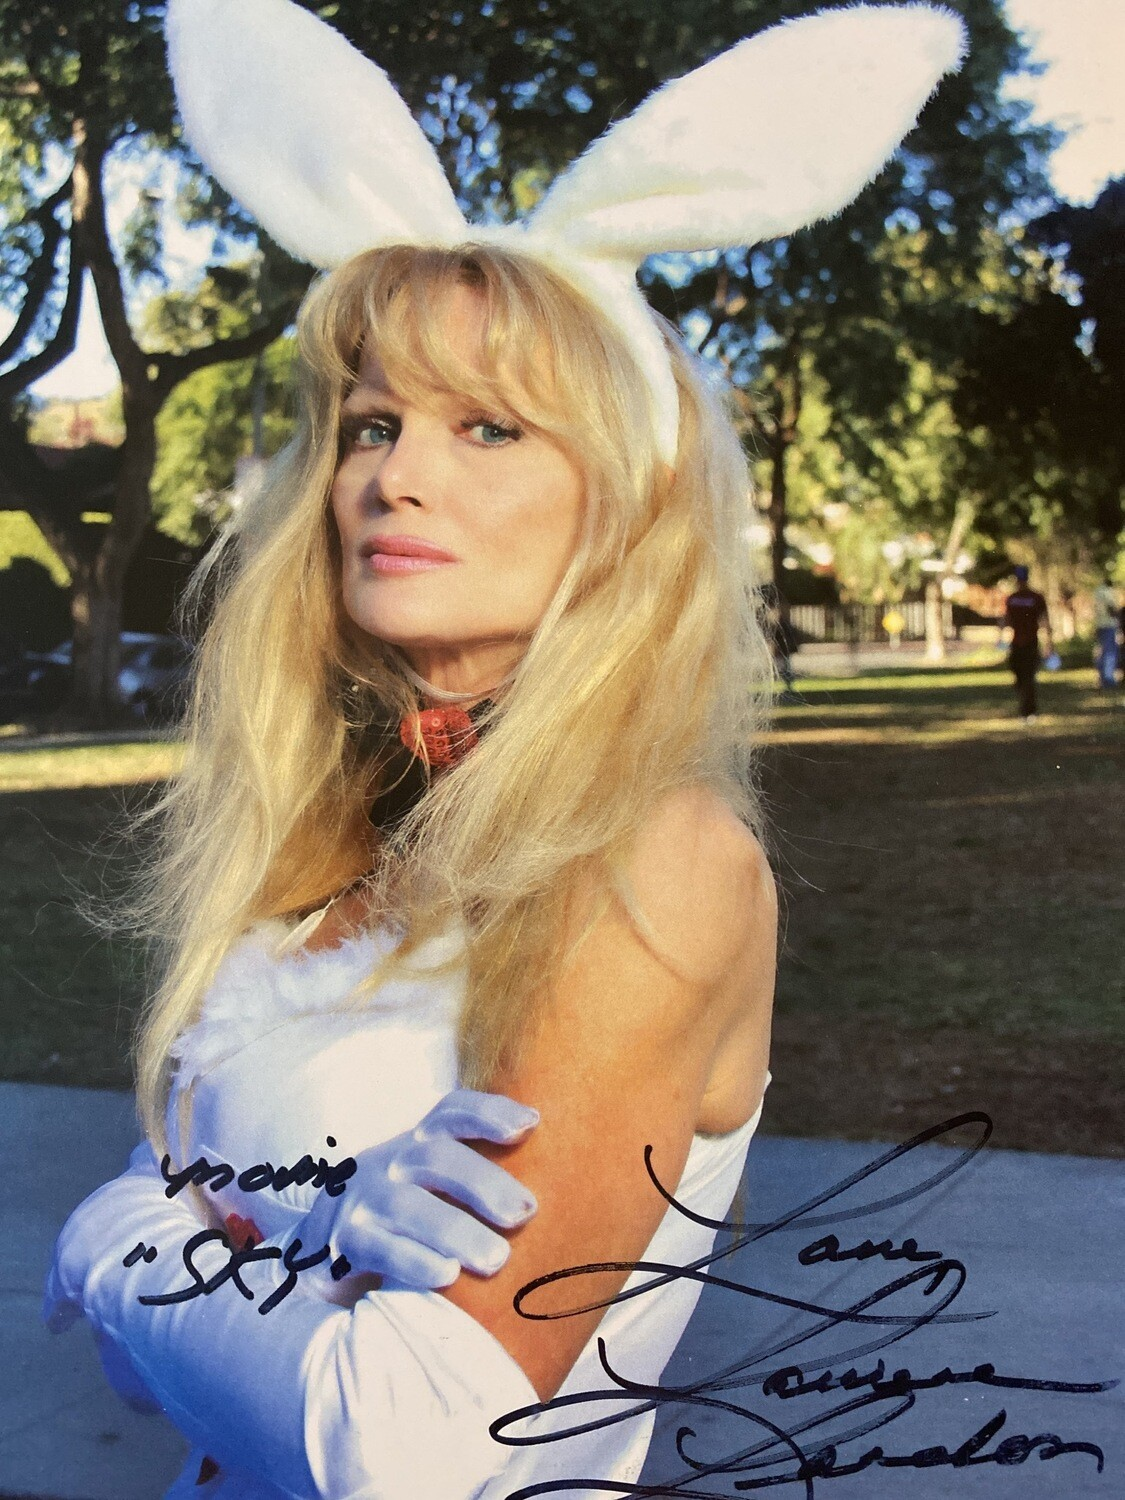 SKY 8x10 Promo Photo Autographed By Laurene Landon Bunny